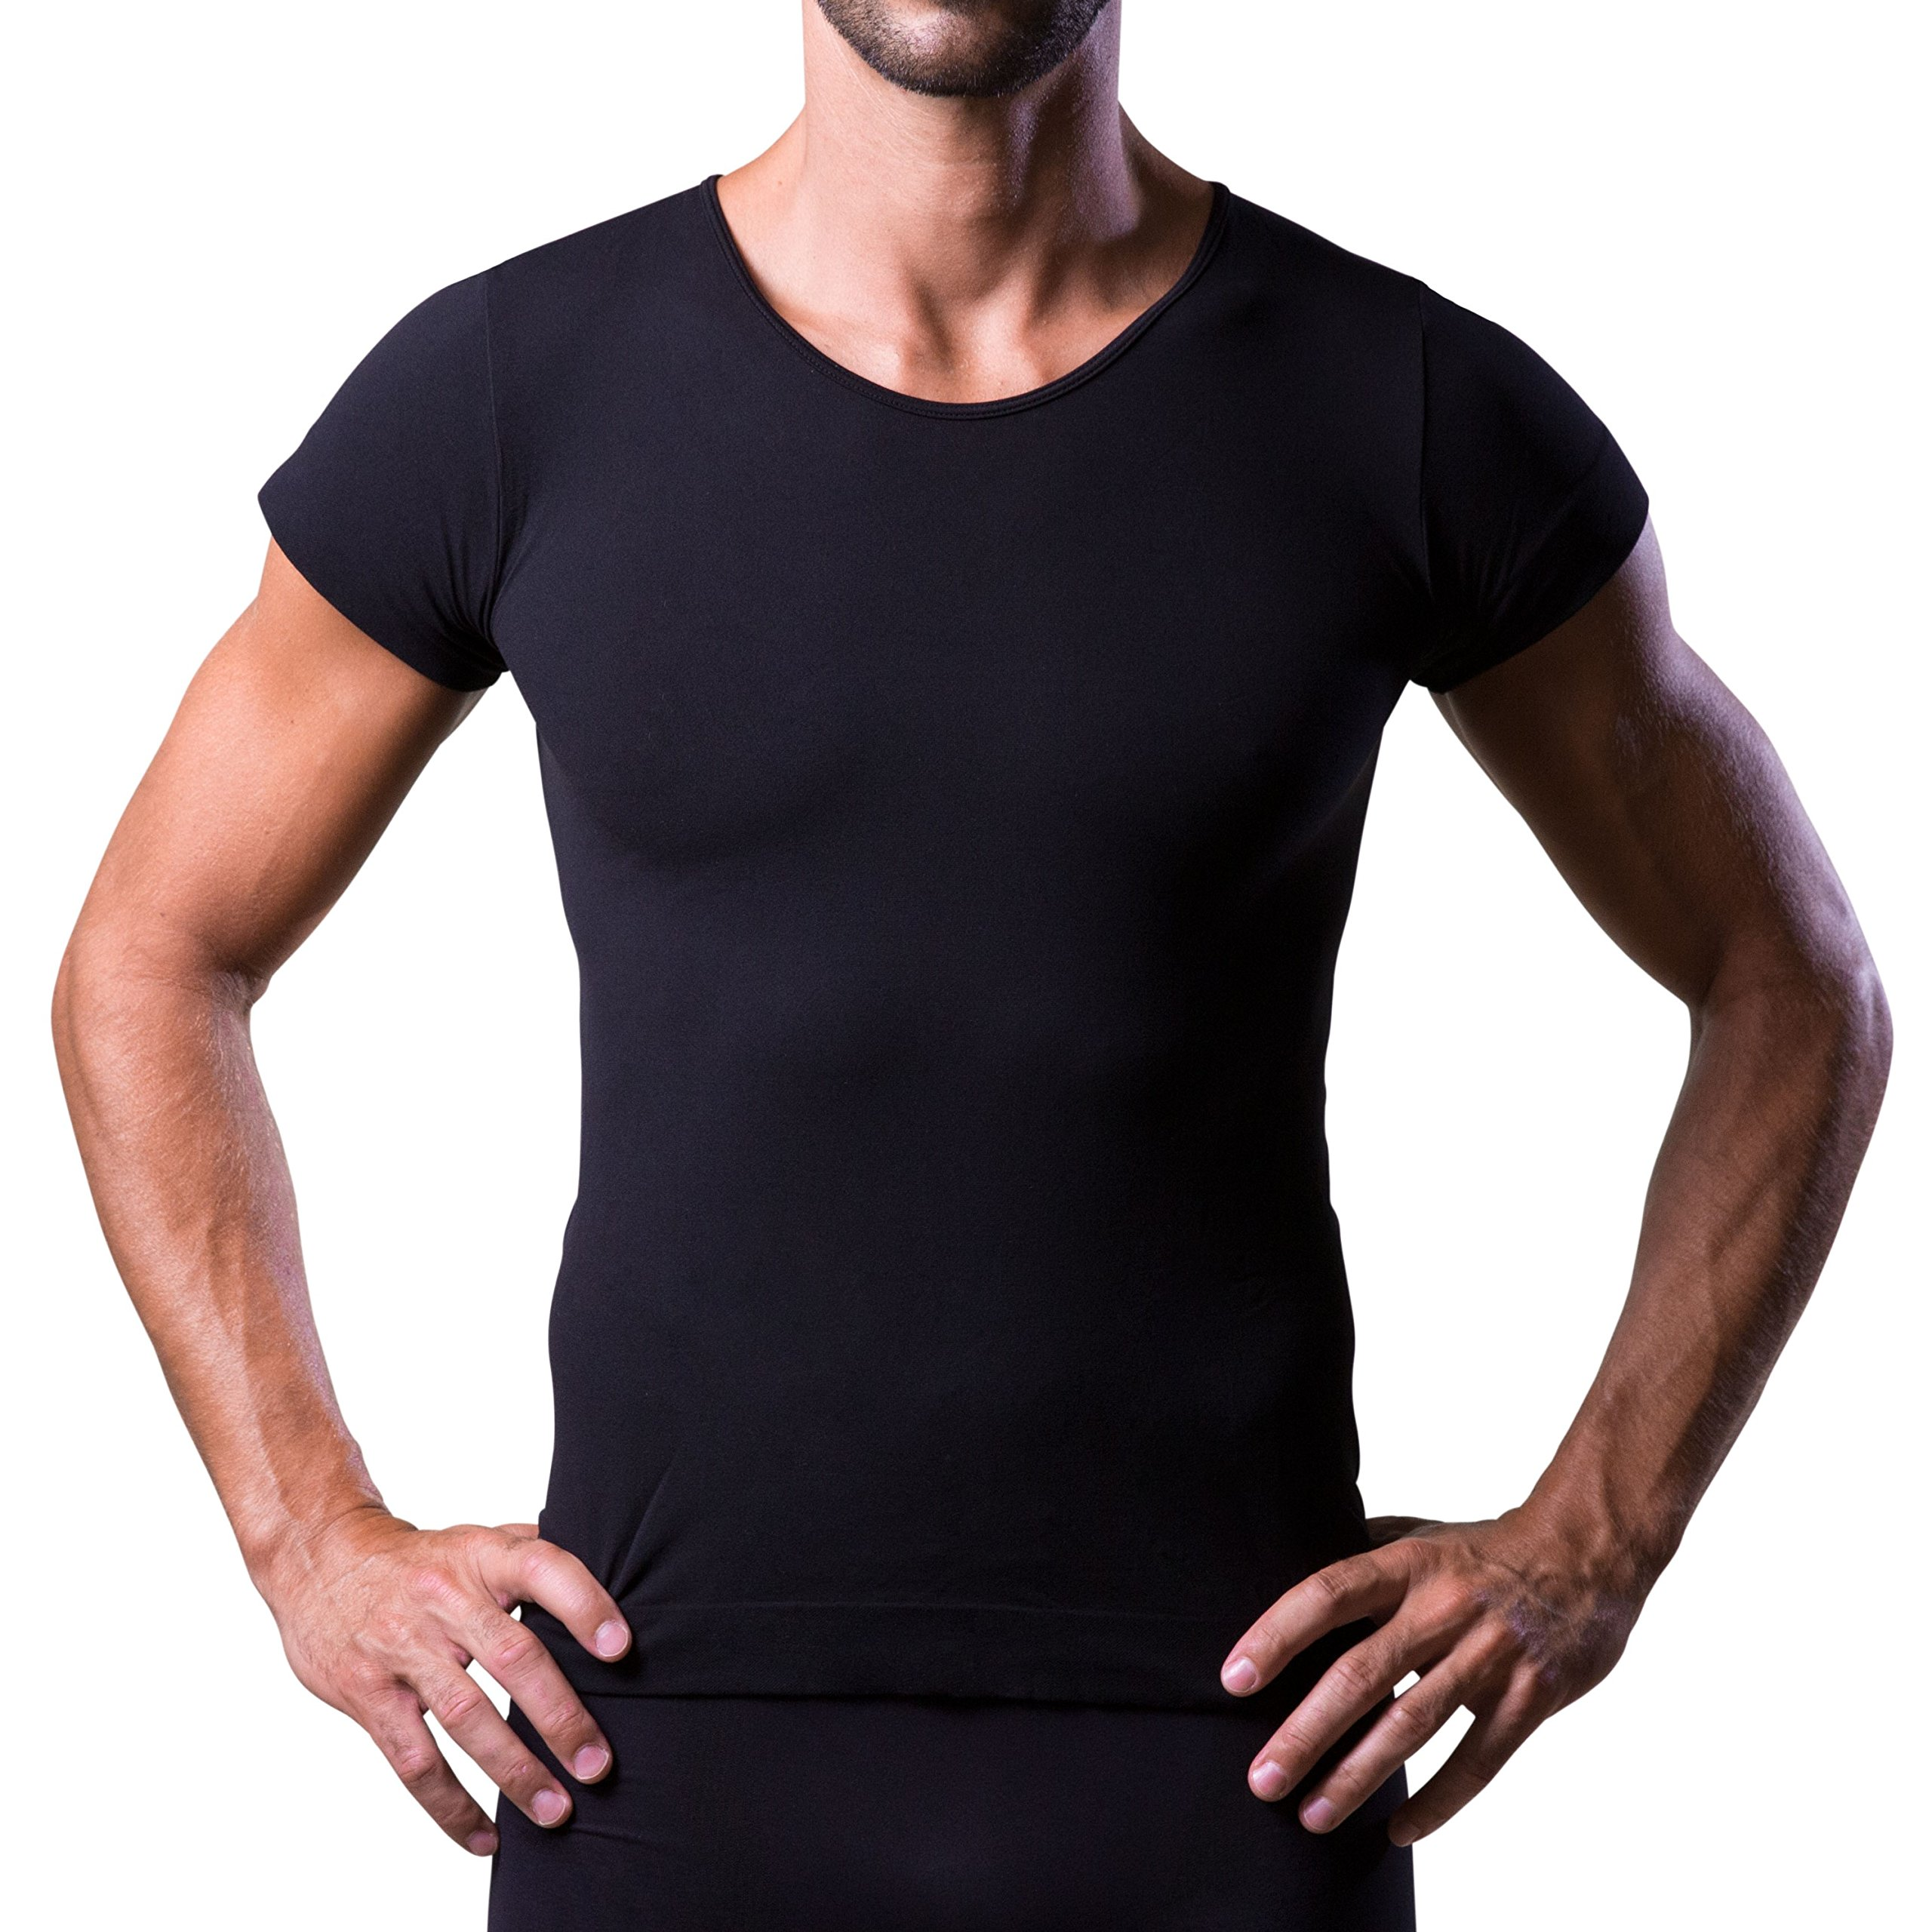 T-DRY men's undershirts invisible and breathable seamless business t-shirt, Black, XX-Large